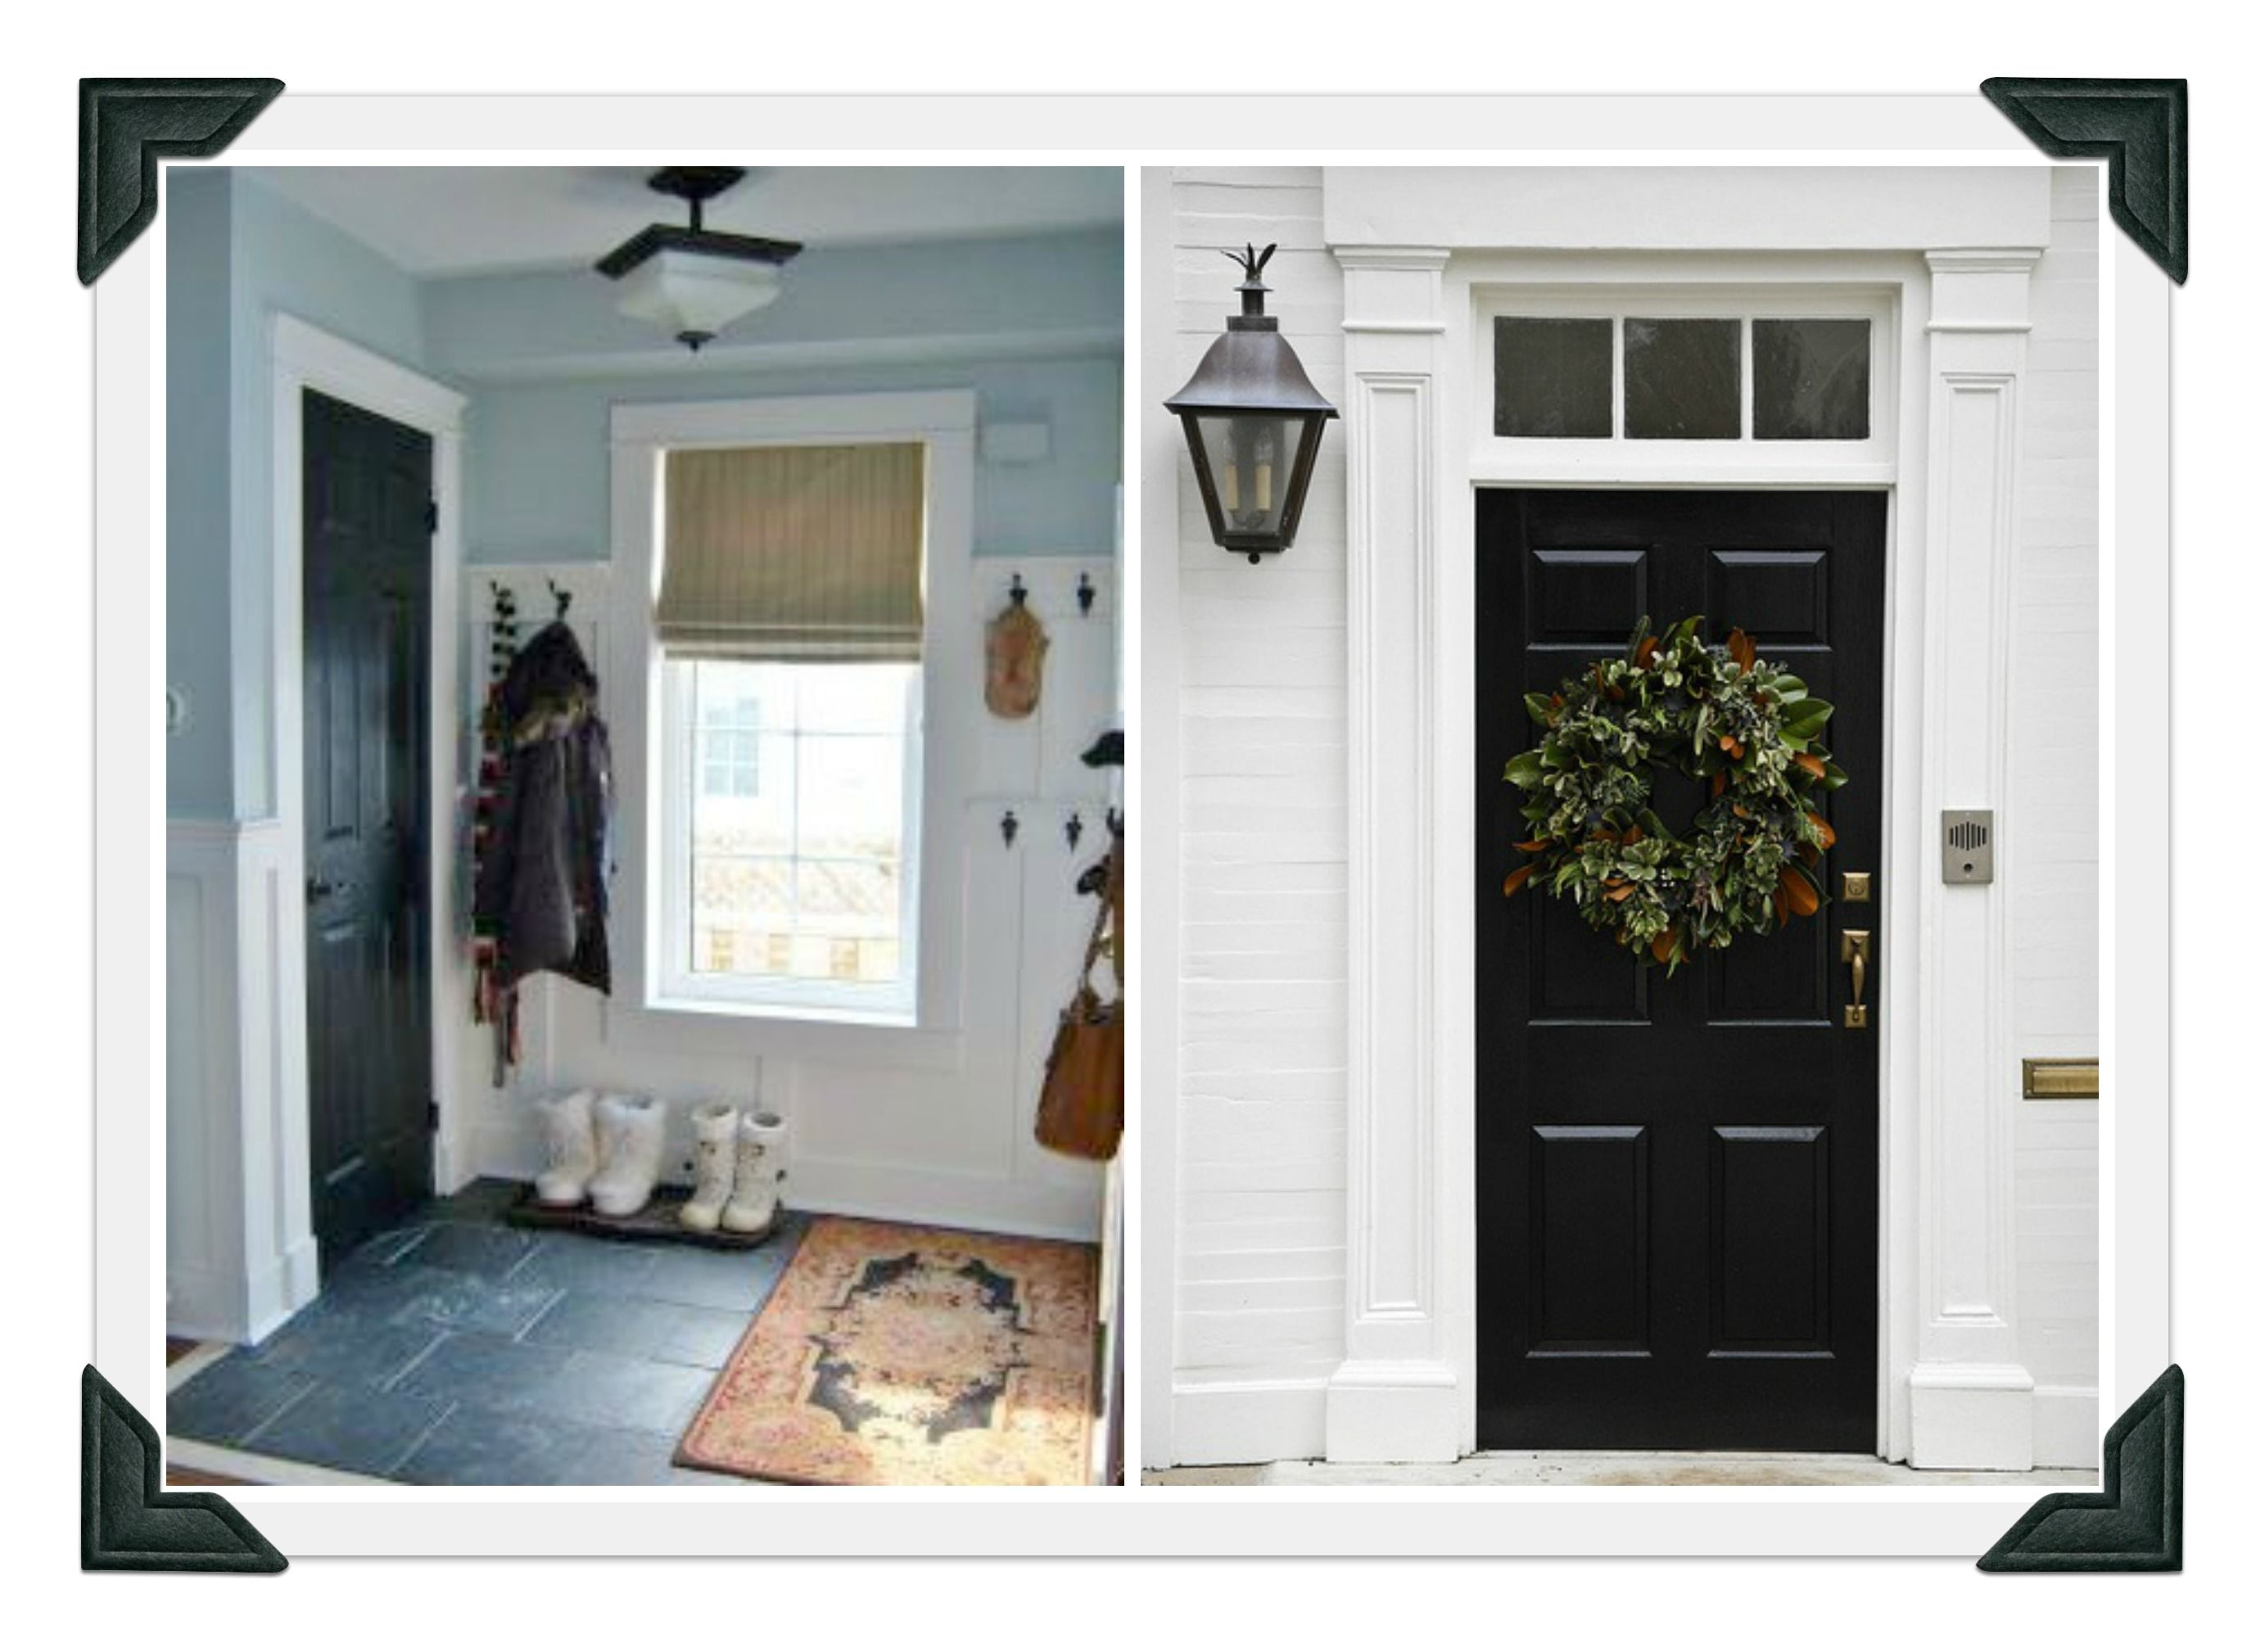 Merveilleux Glorious White Front Door Trim With Victorian Headers And Pilaster Column  For Black Doors Frames Added 3 Lite Glass Transom Windows In Entry Areas ...